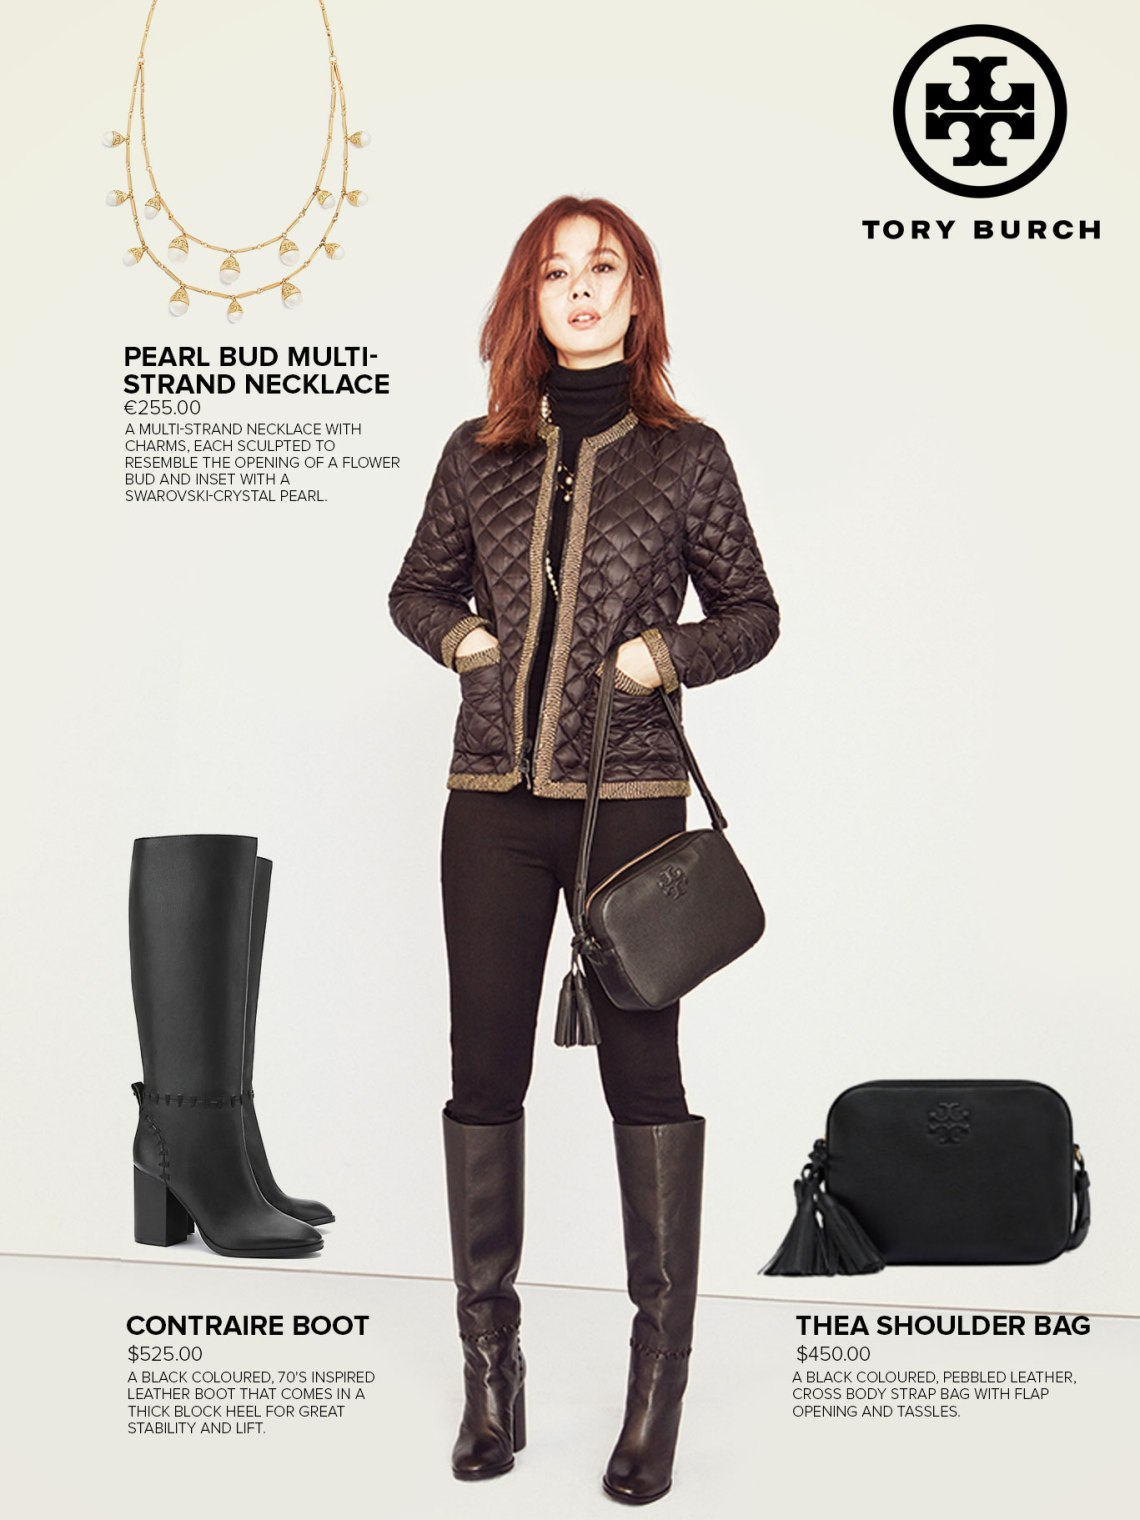 kim-hyun-joo-models-tory-burch-for-elle-04-drama-chronicles